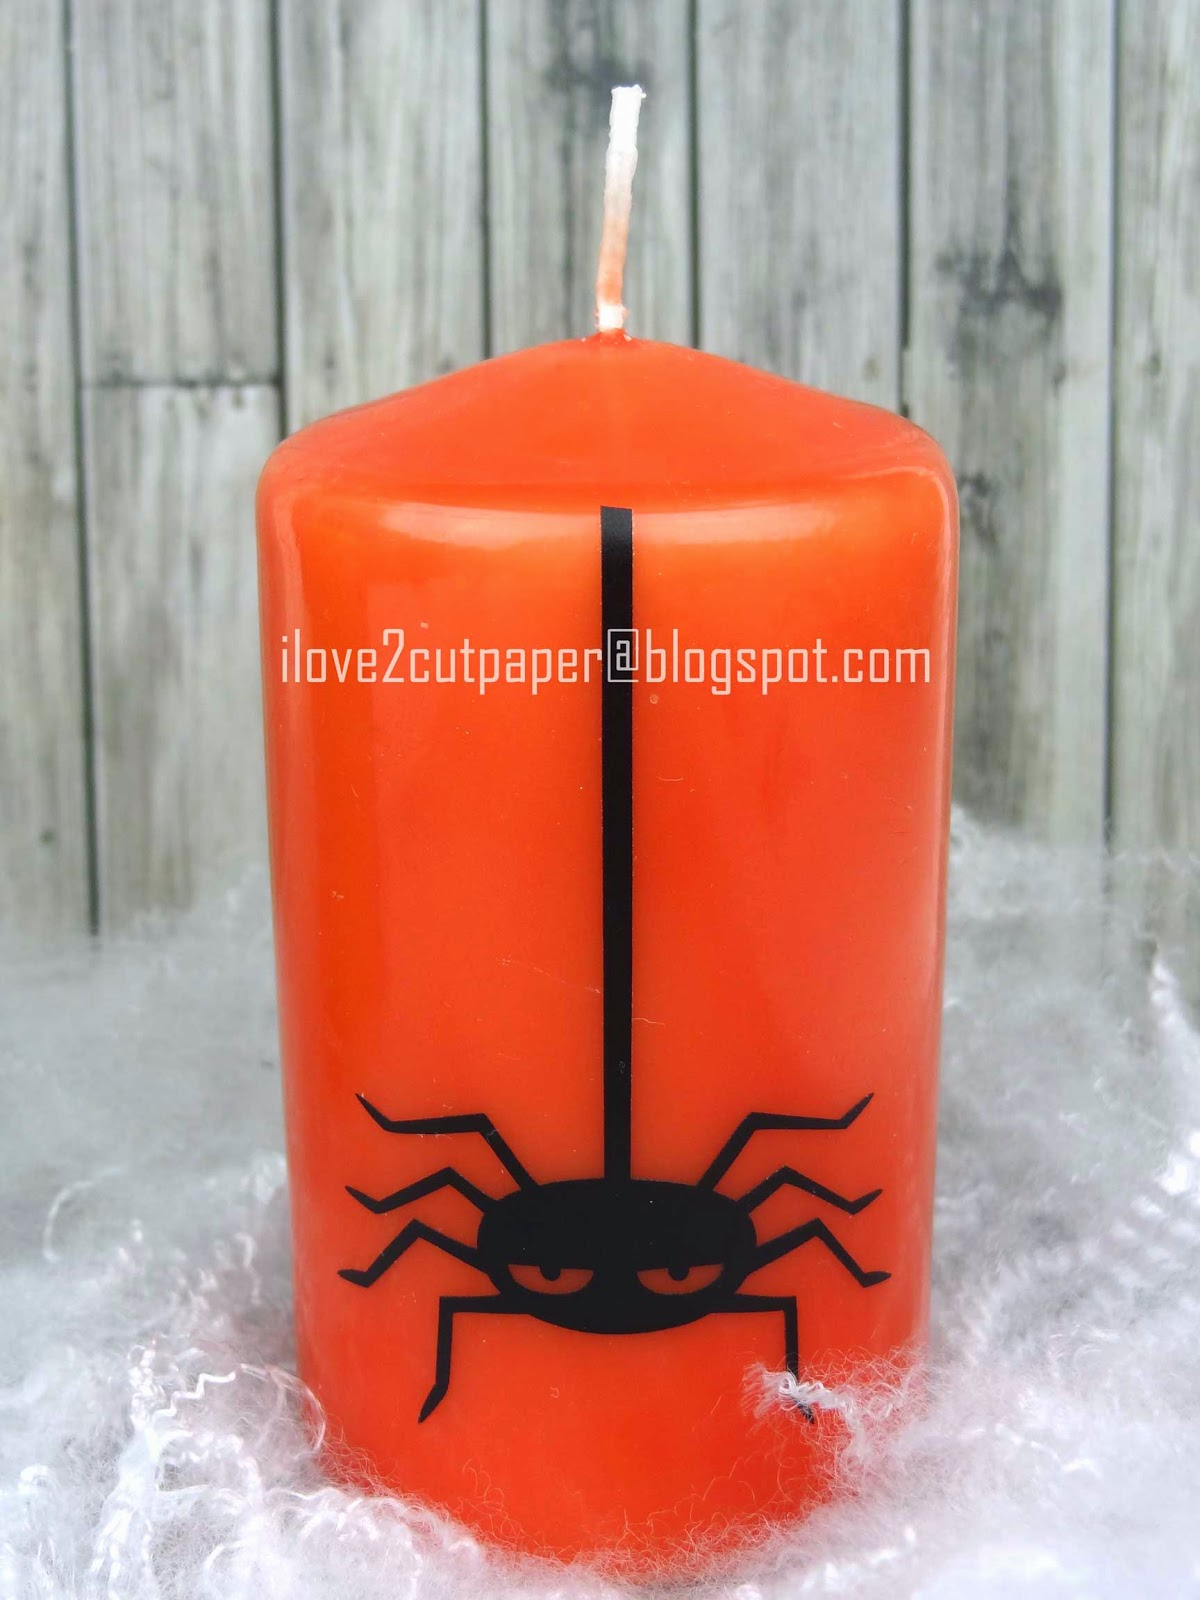 Vinyl on candles for Halloween